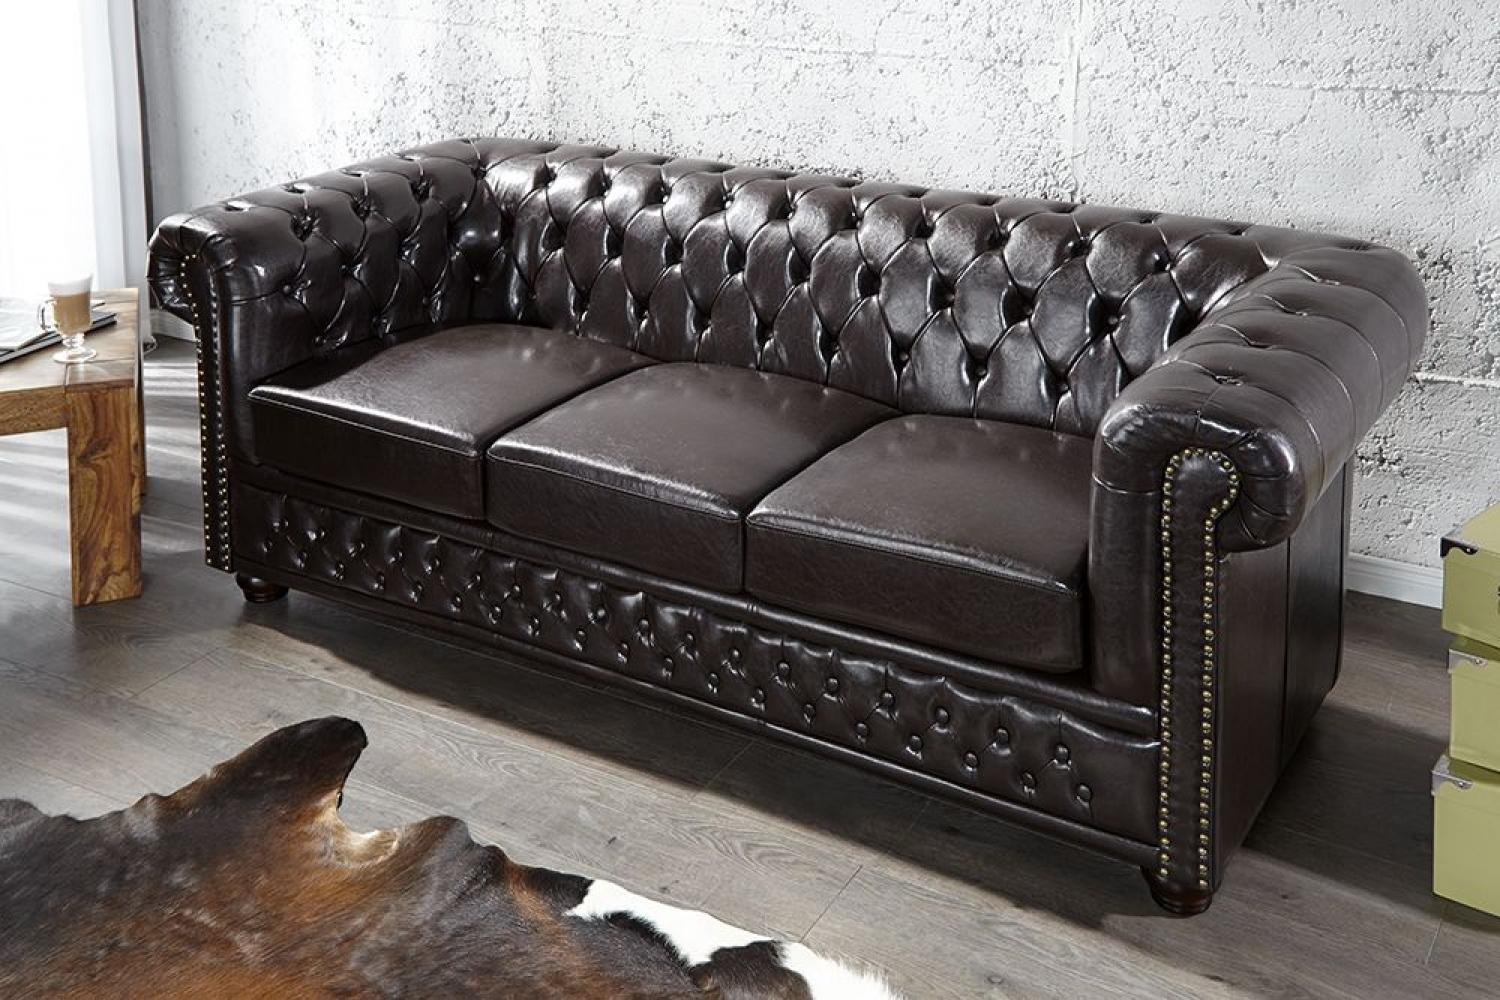 Canape chesterfield cuir pas cher 28 images canape for Canape chesterfield pas cher